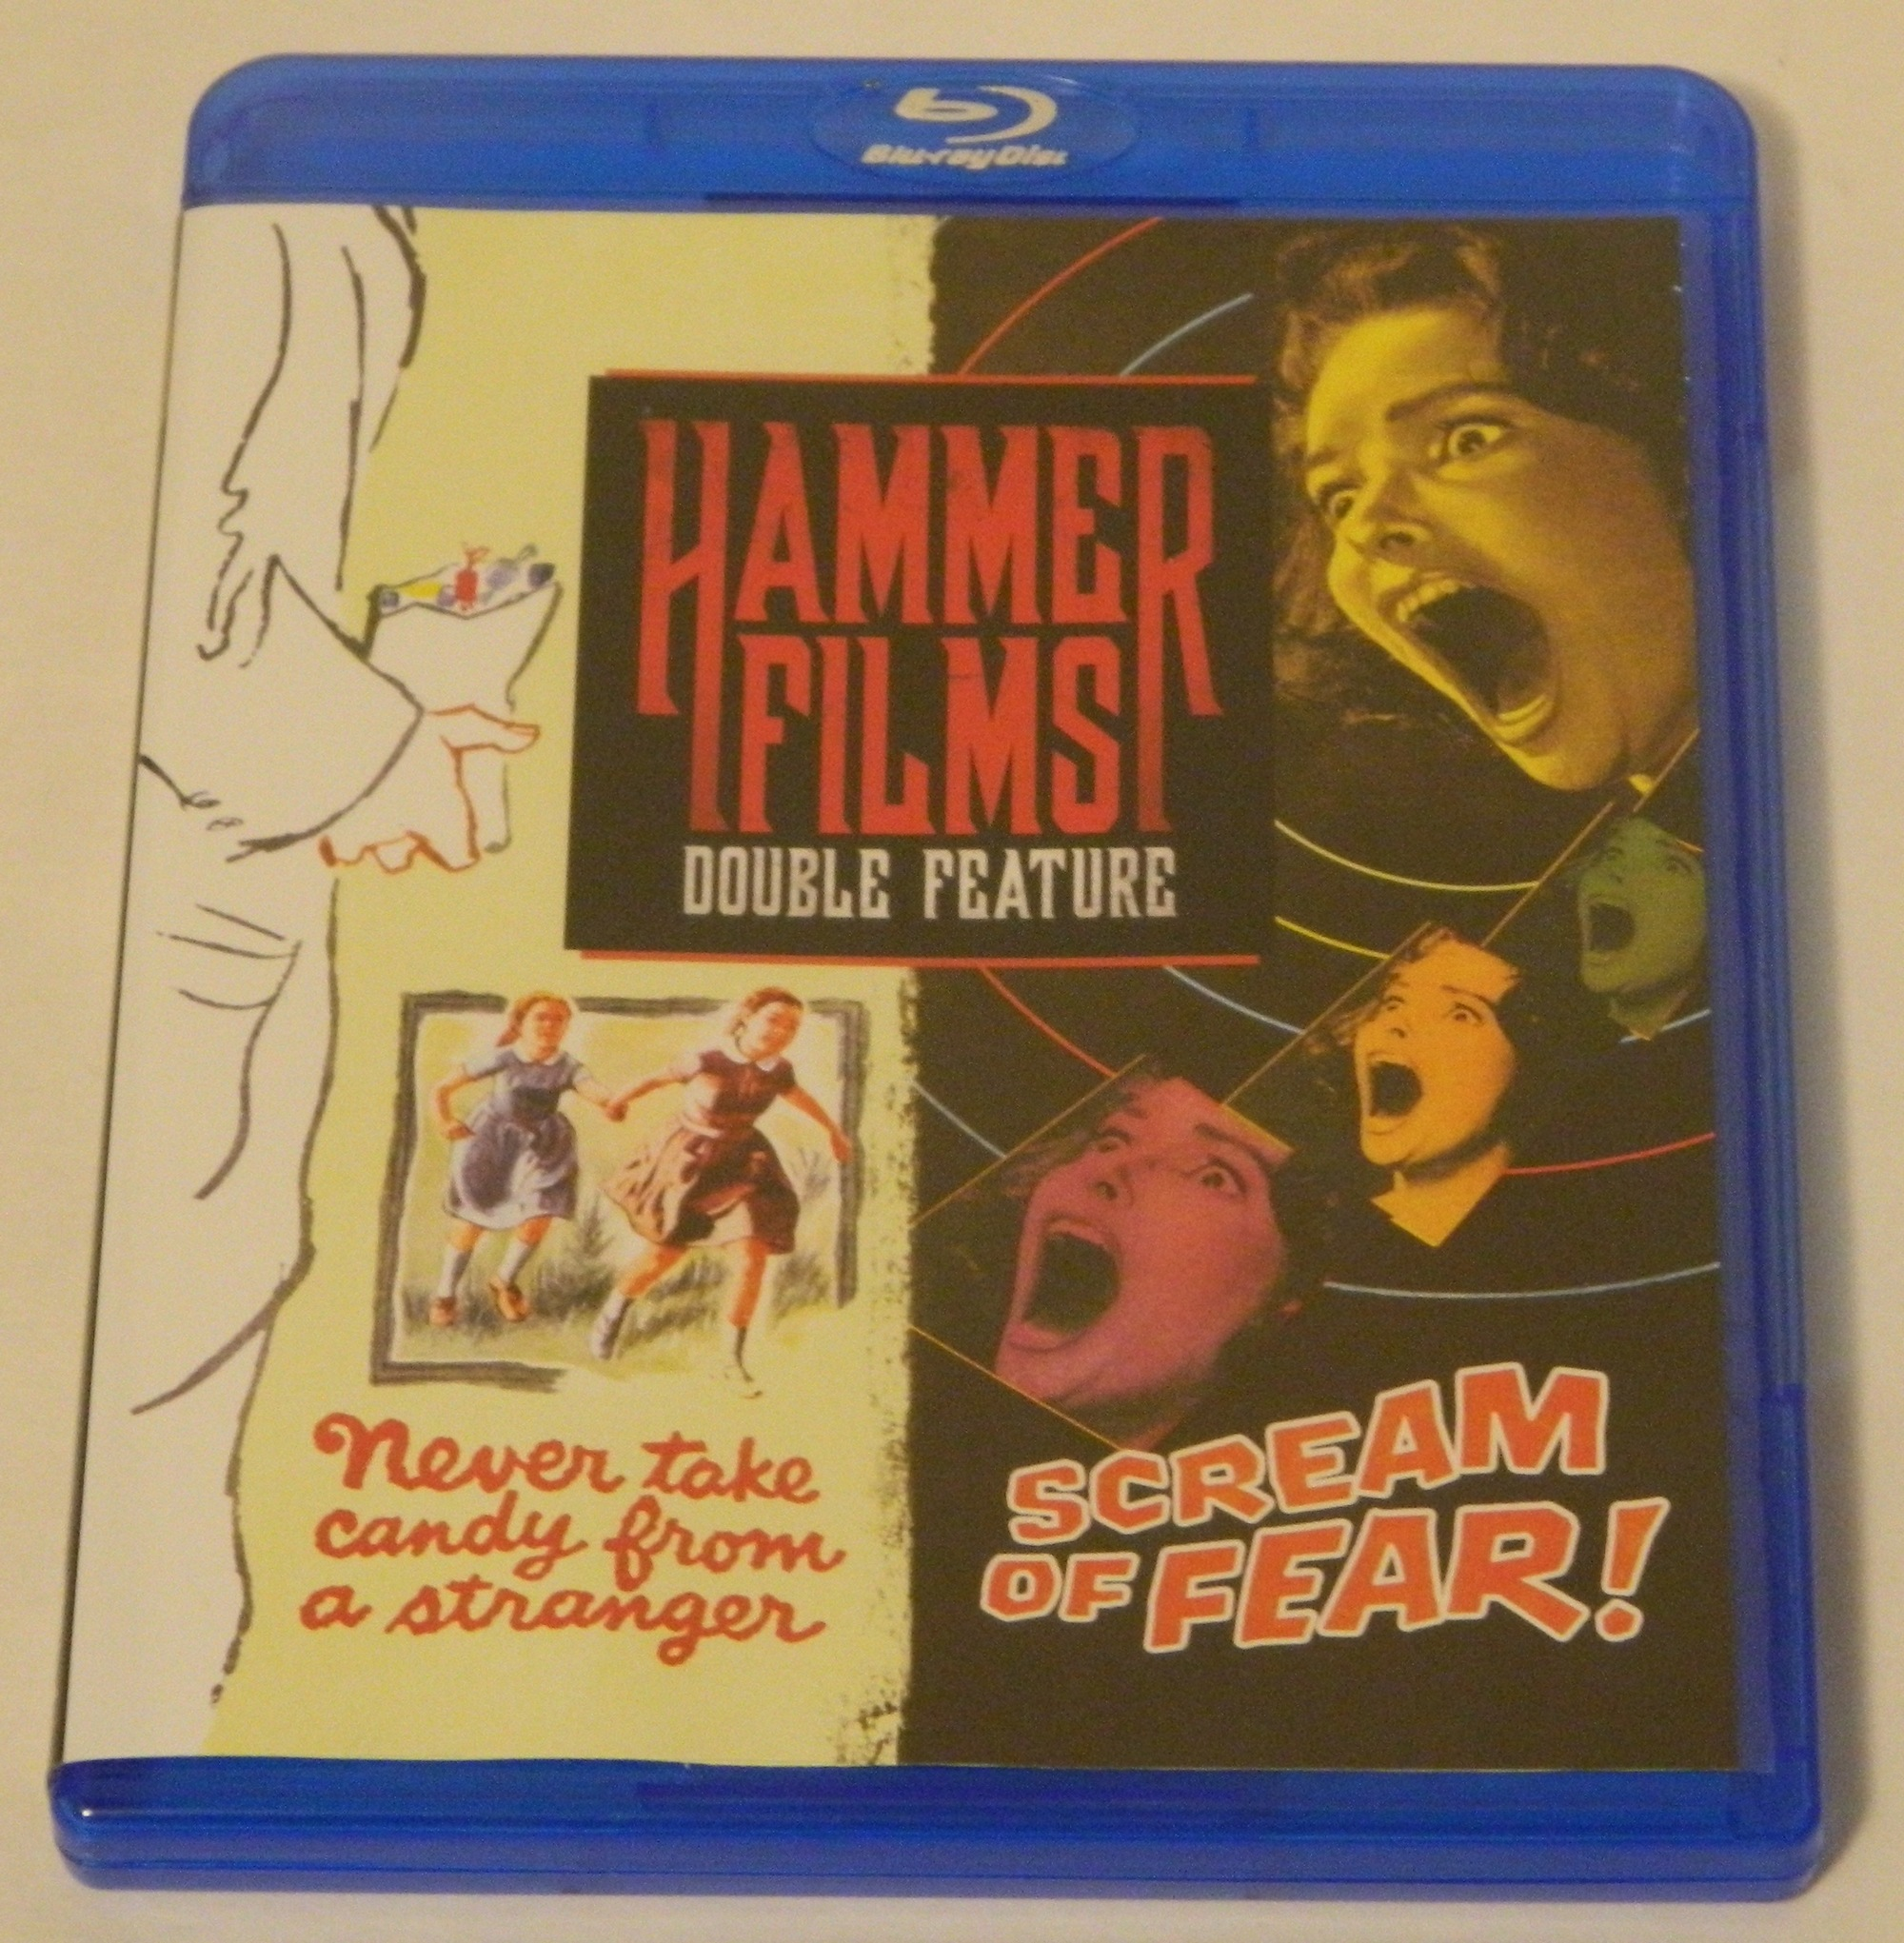 Hammer Films Double Feature Never Take Candy From a Stranger Blu-ray